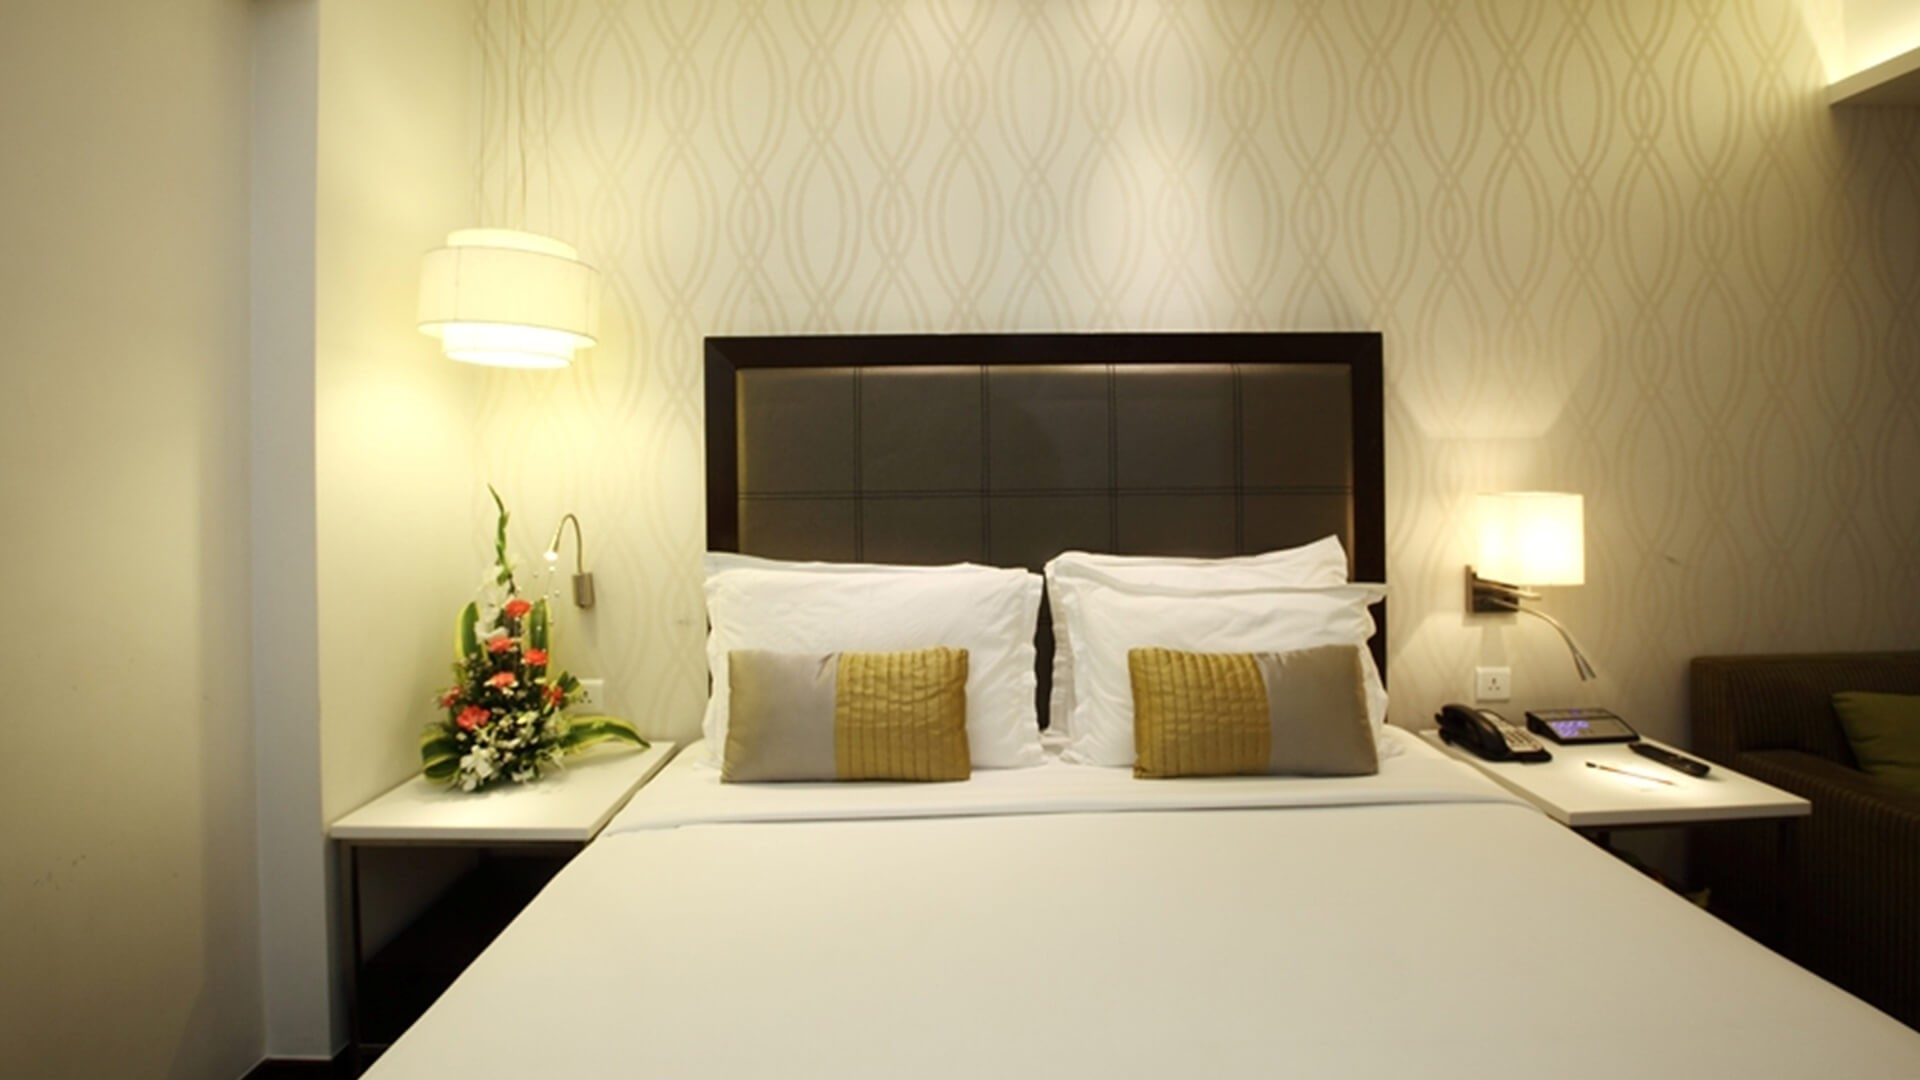 Business hotel in Mumbai central, 4 star hotel in Mumbai central, 4 star hotel in Mumbai, luxury business hotel in Mumbai central, hotel near Mumbai central railway station, hotels near phoenix mall lower parel